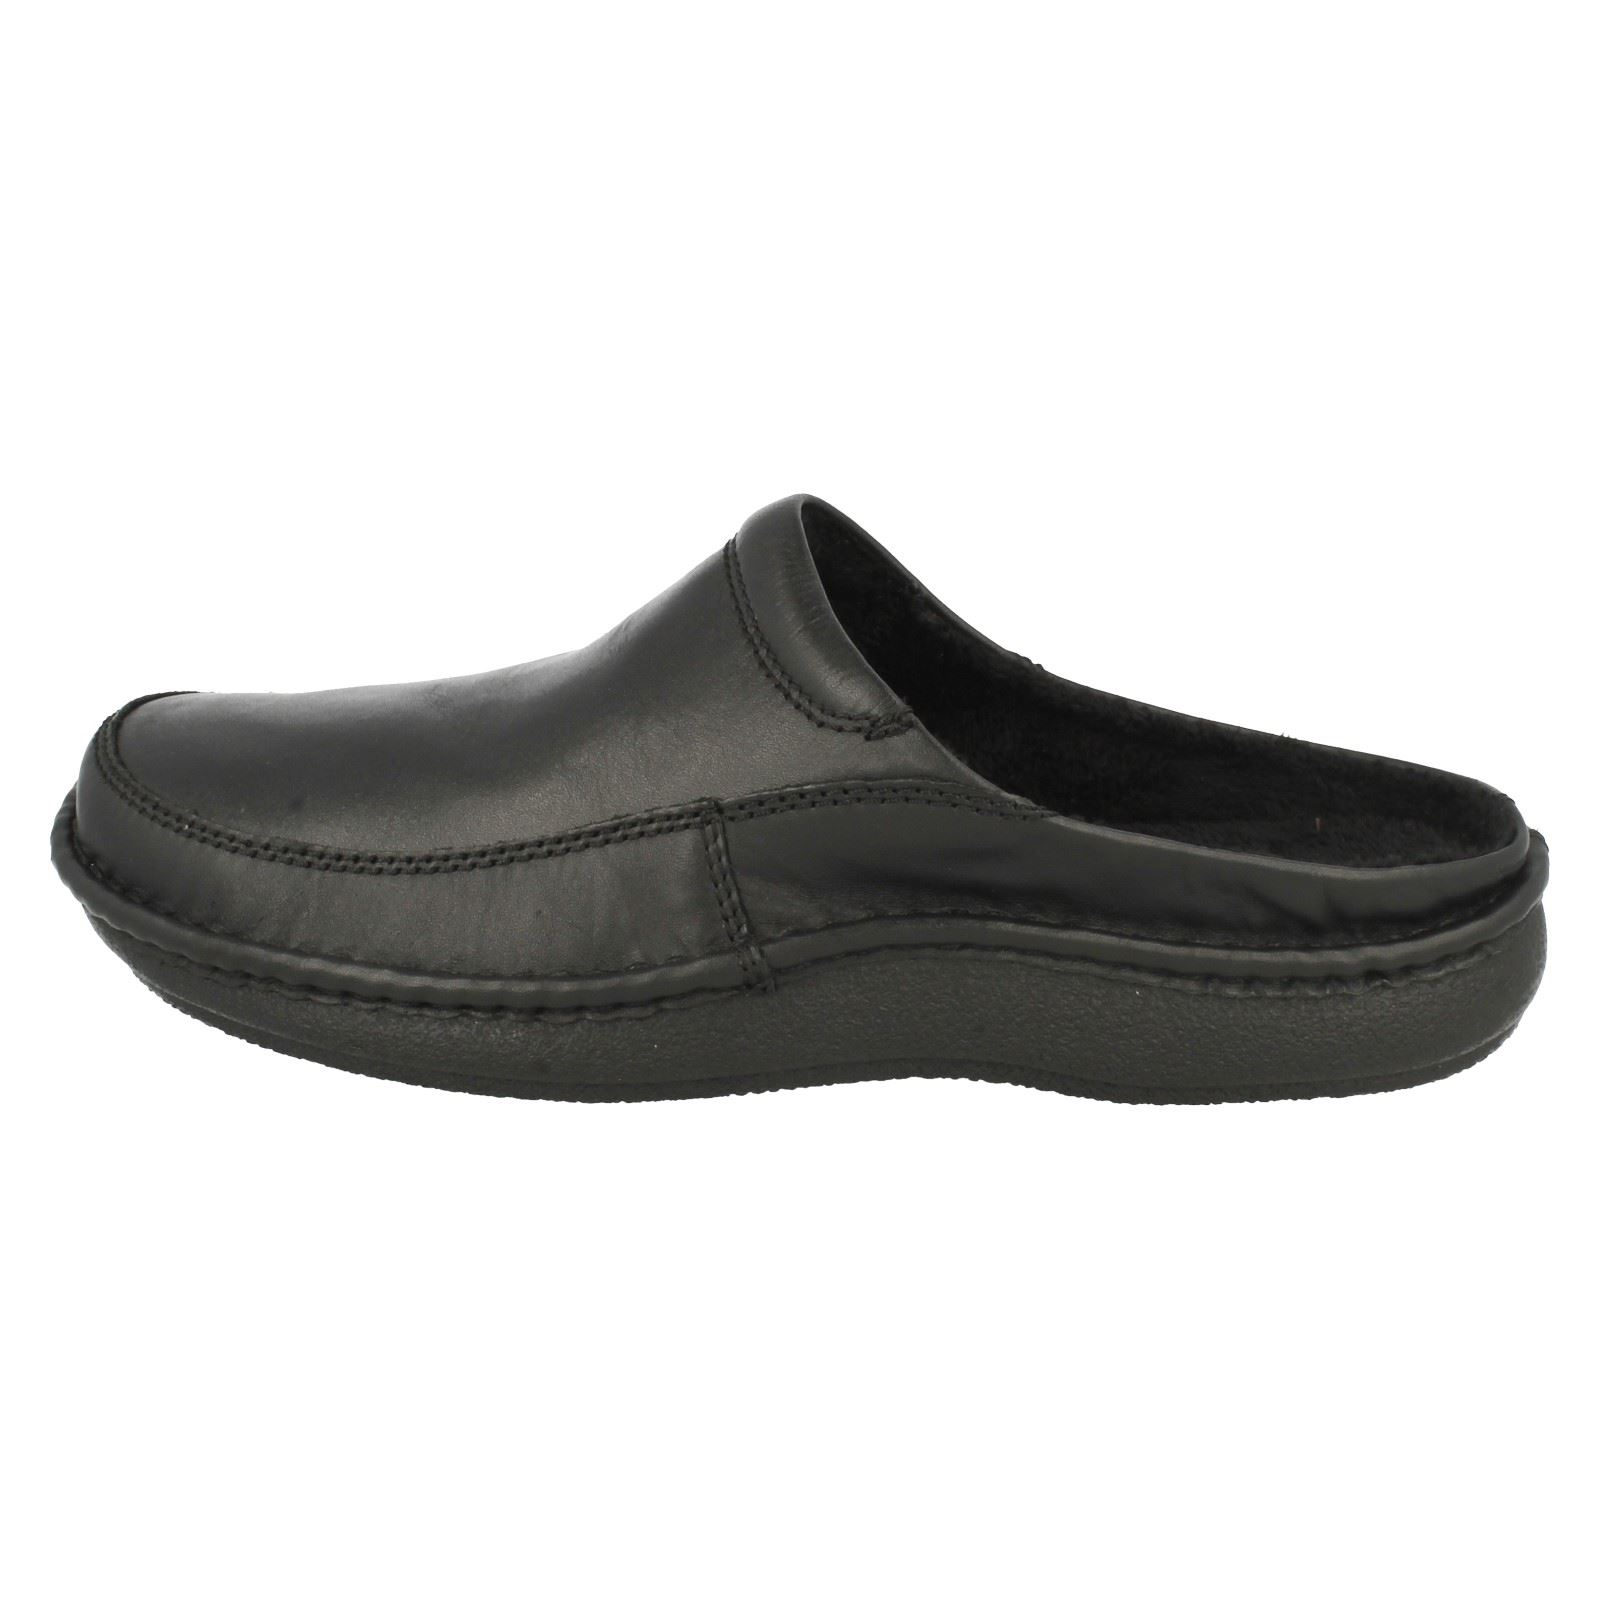 Buy Clarks Shoes Online